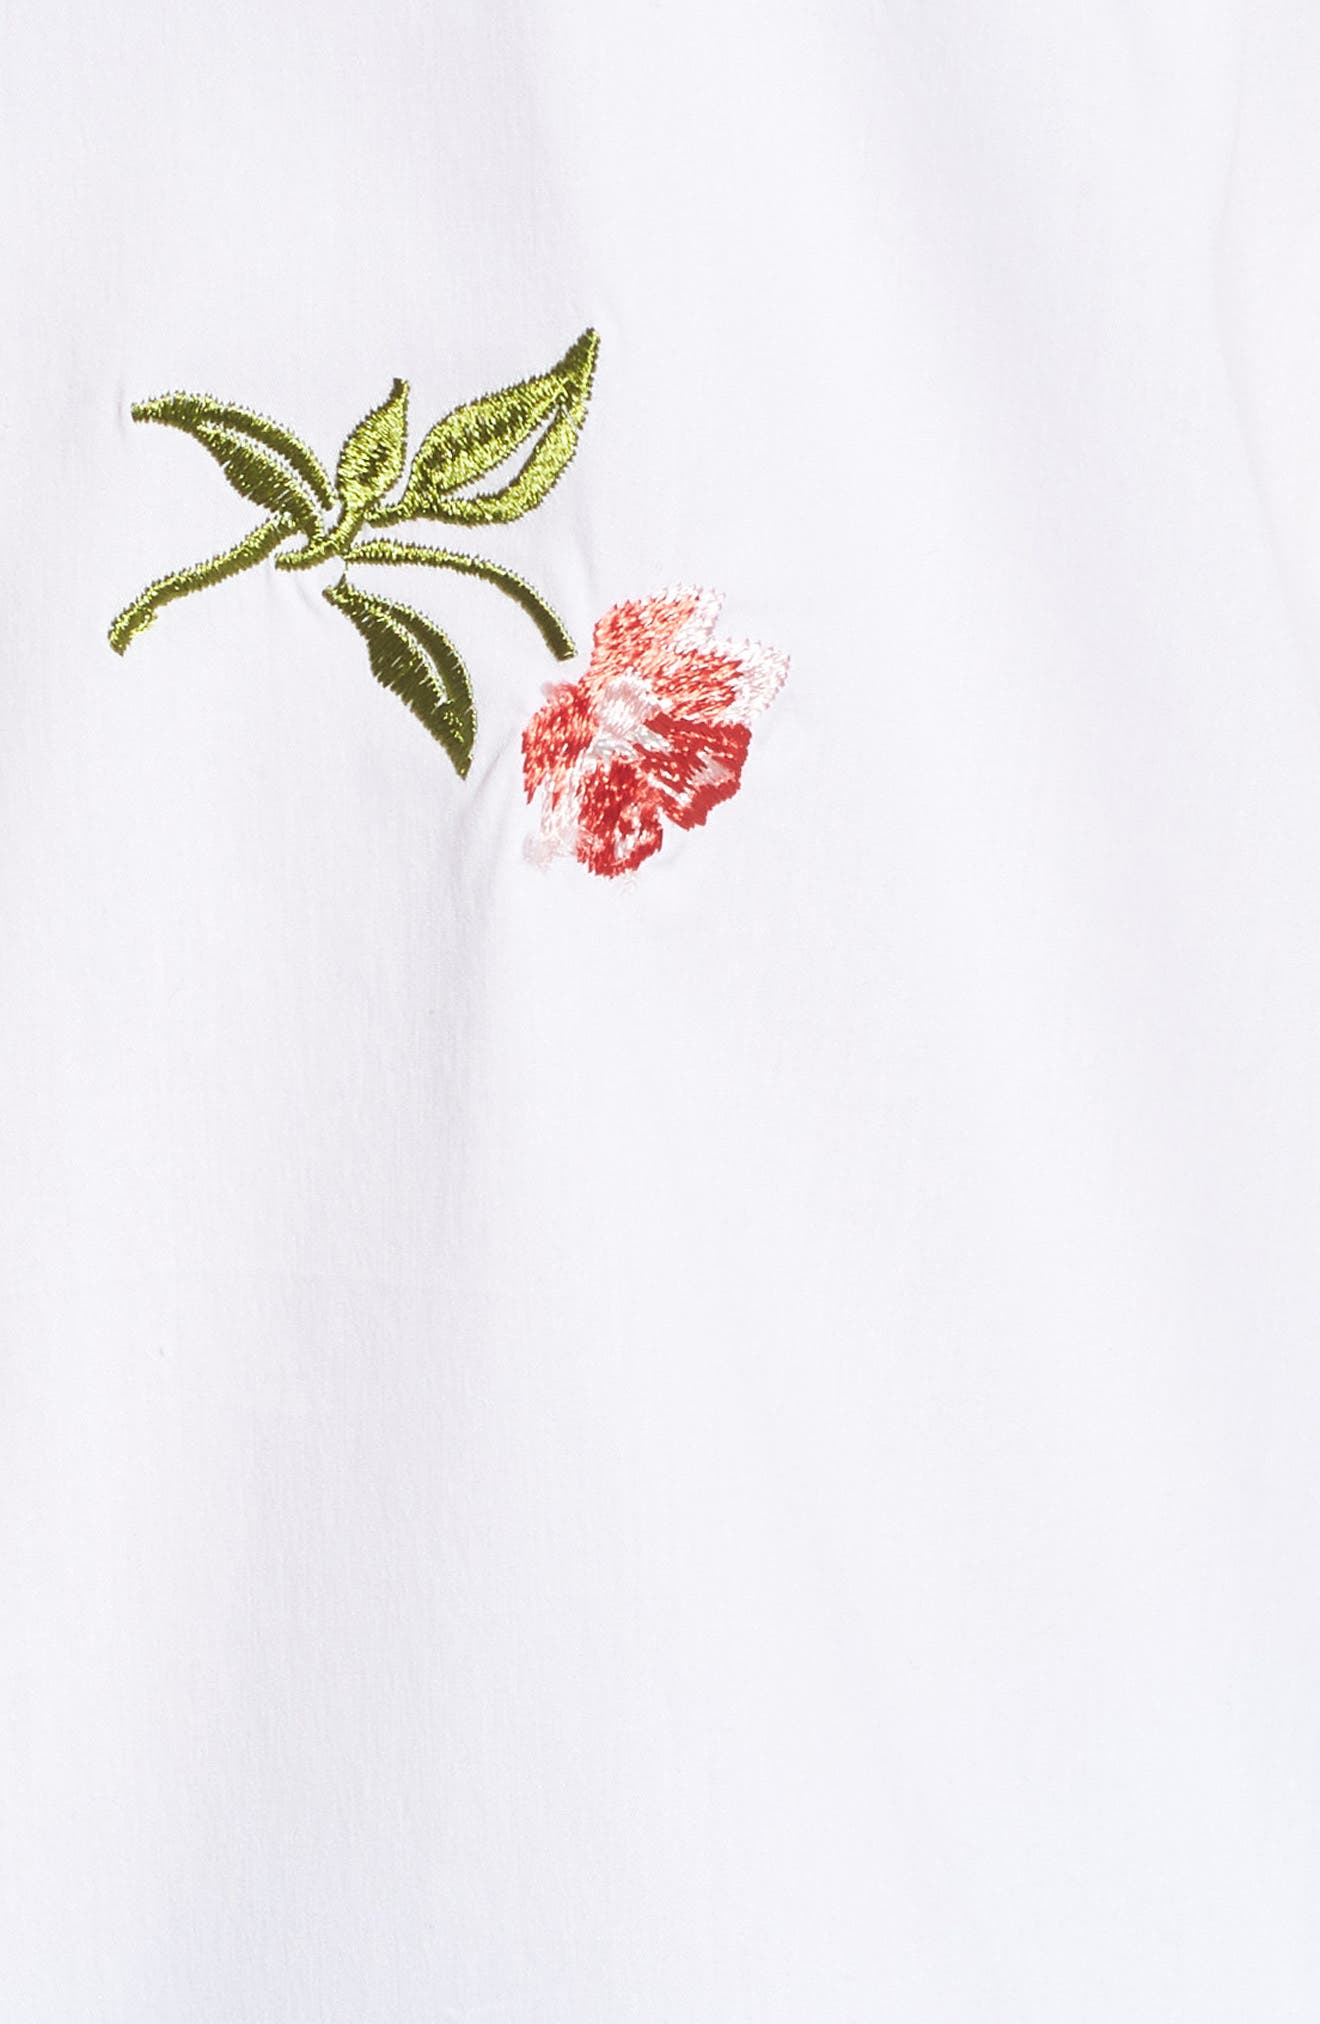 CHELSEA28,                             Embroidered Woven Shirt,                             Alternate thumbnail 6, color,                             WHITE- CORAL BUD EMBROIDERY